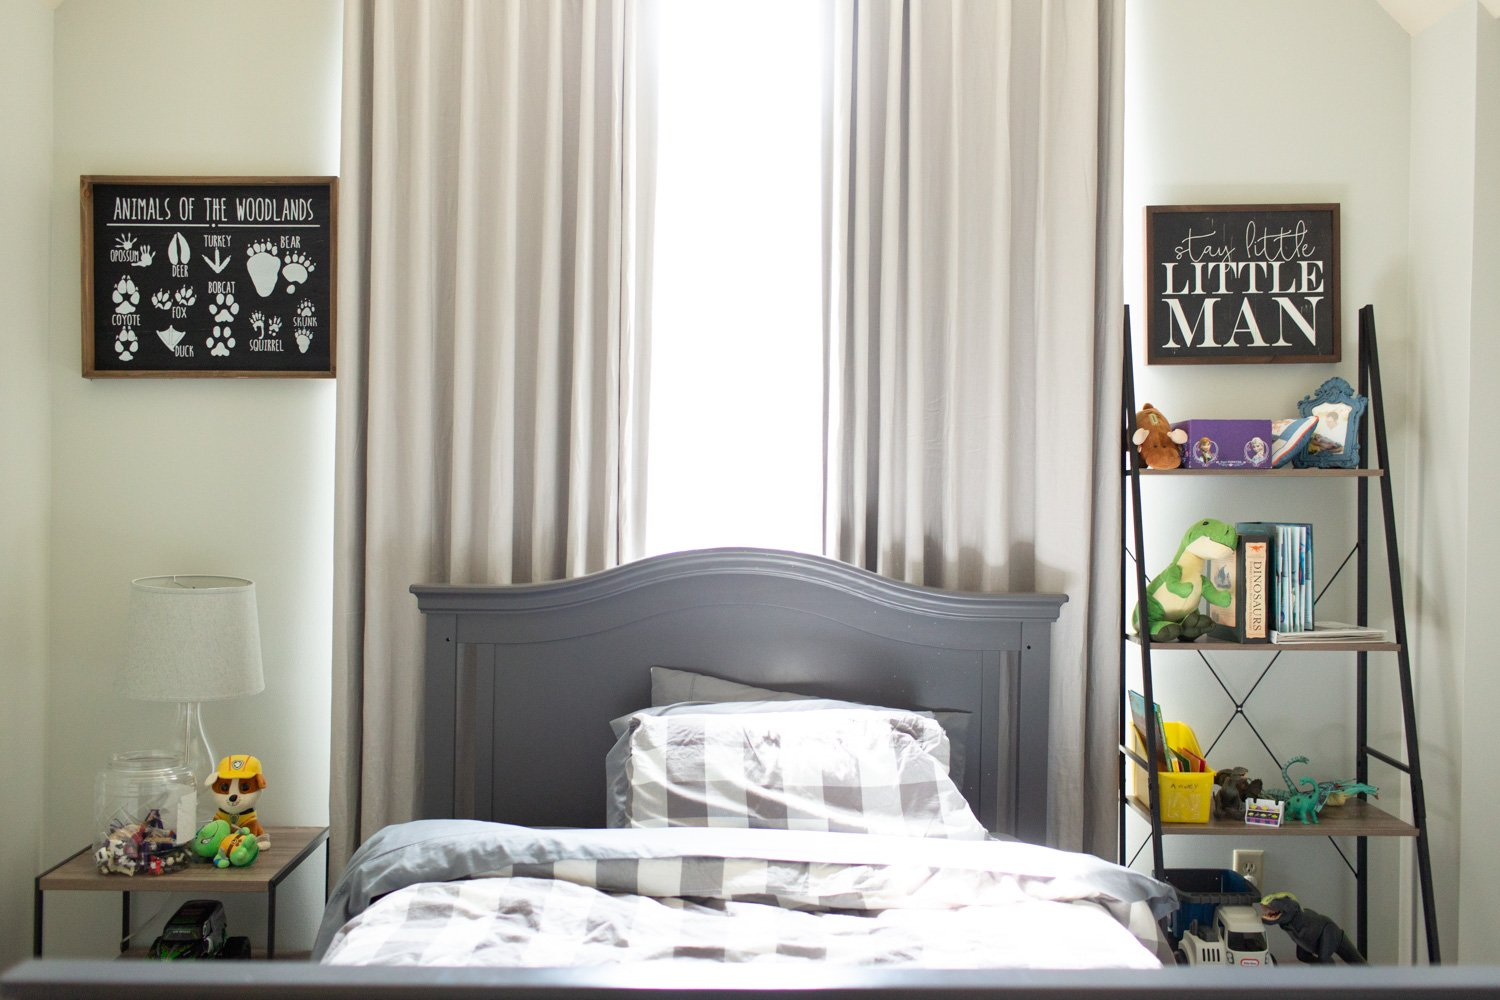 Benjamin Moore Gray Owl review in real bedroom.